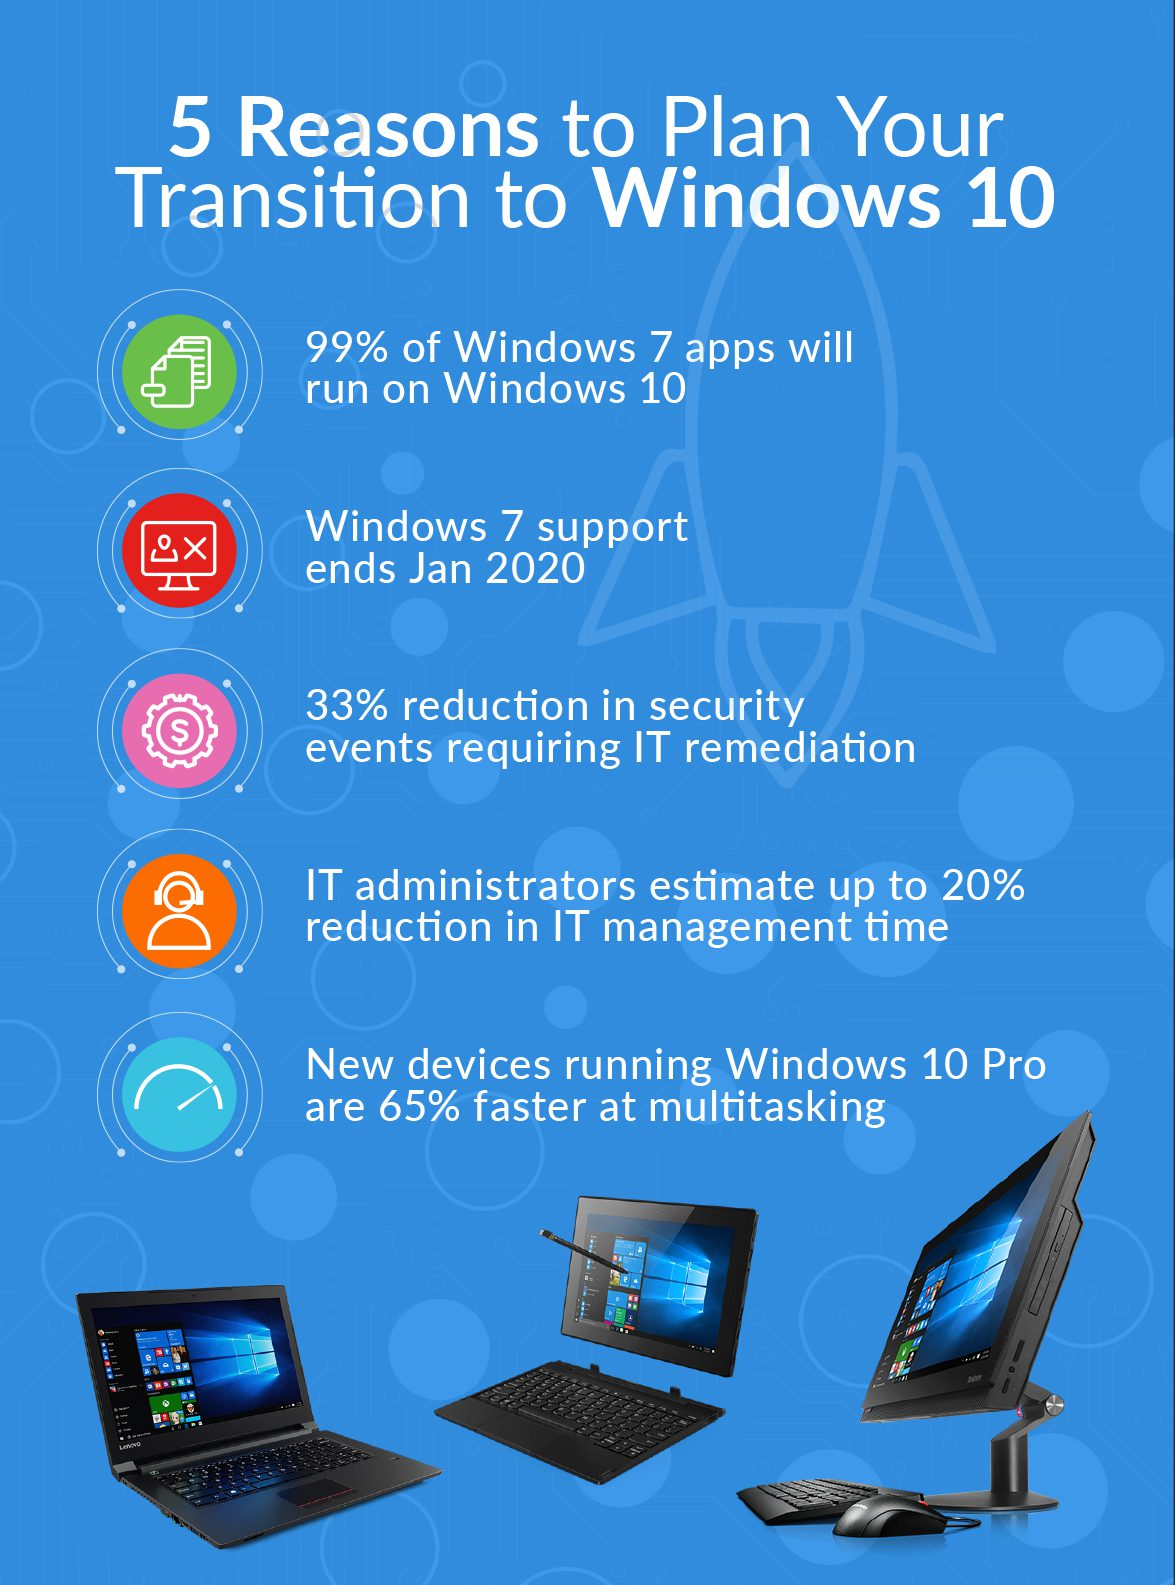 Moving to Windows 10 for Greater Security and Manageability